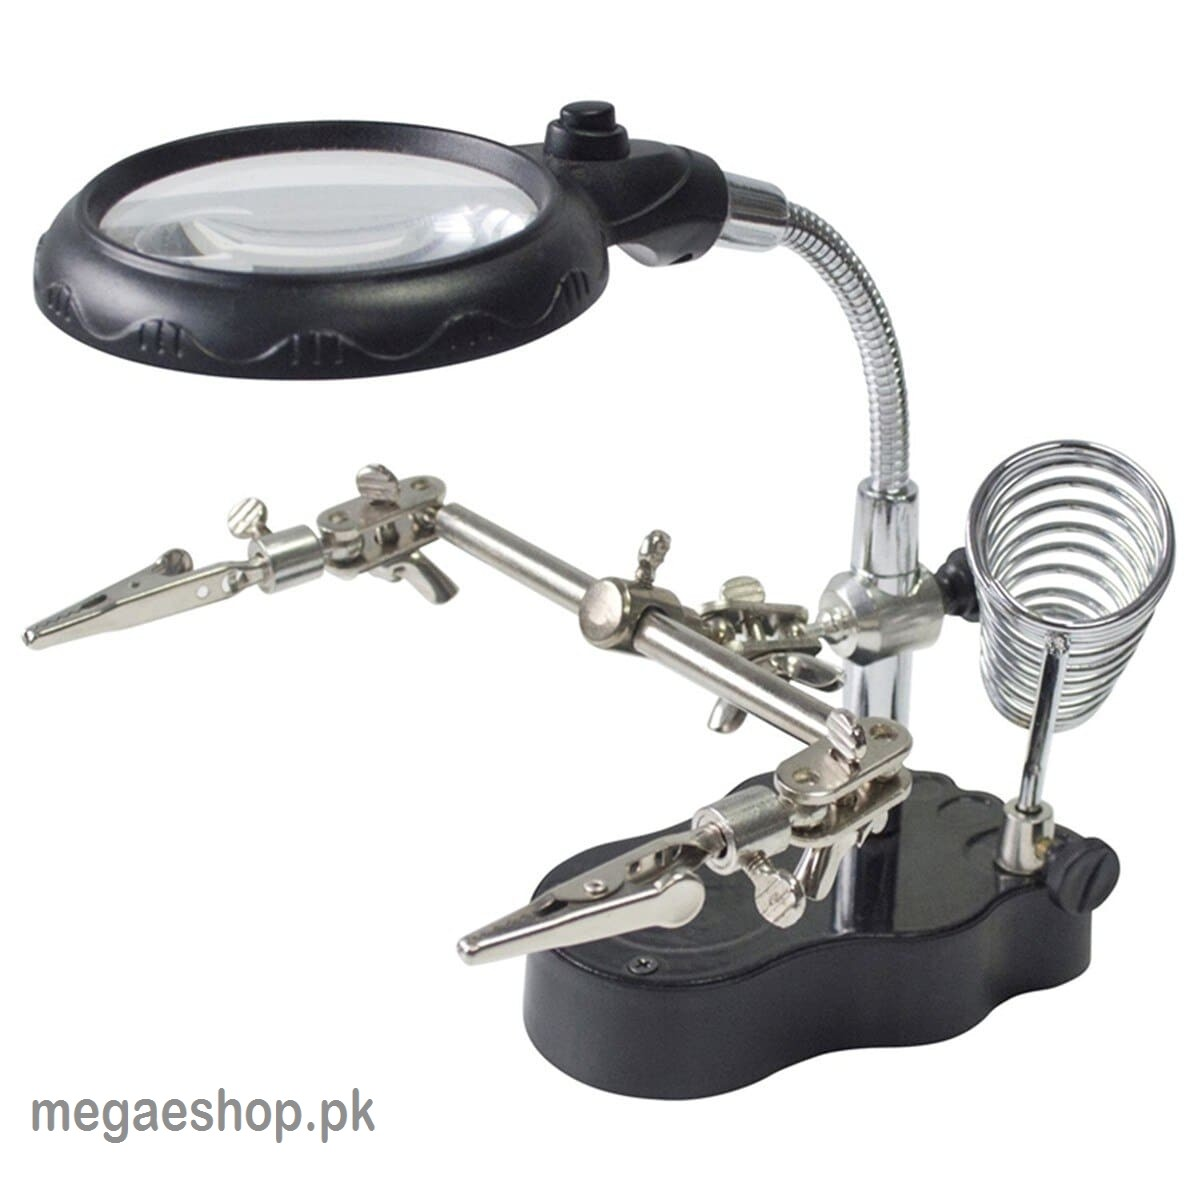 Helping Hand Magnifier LED Light With Soldering Stand For Repair Power Tools Accessory